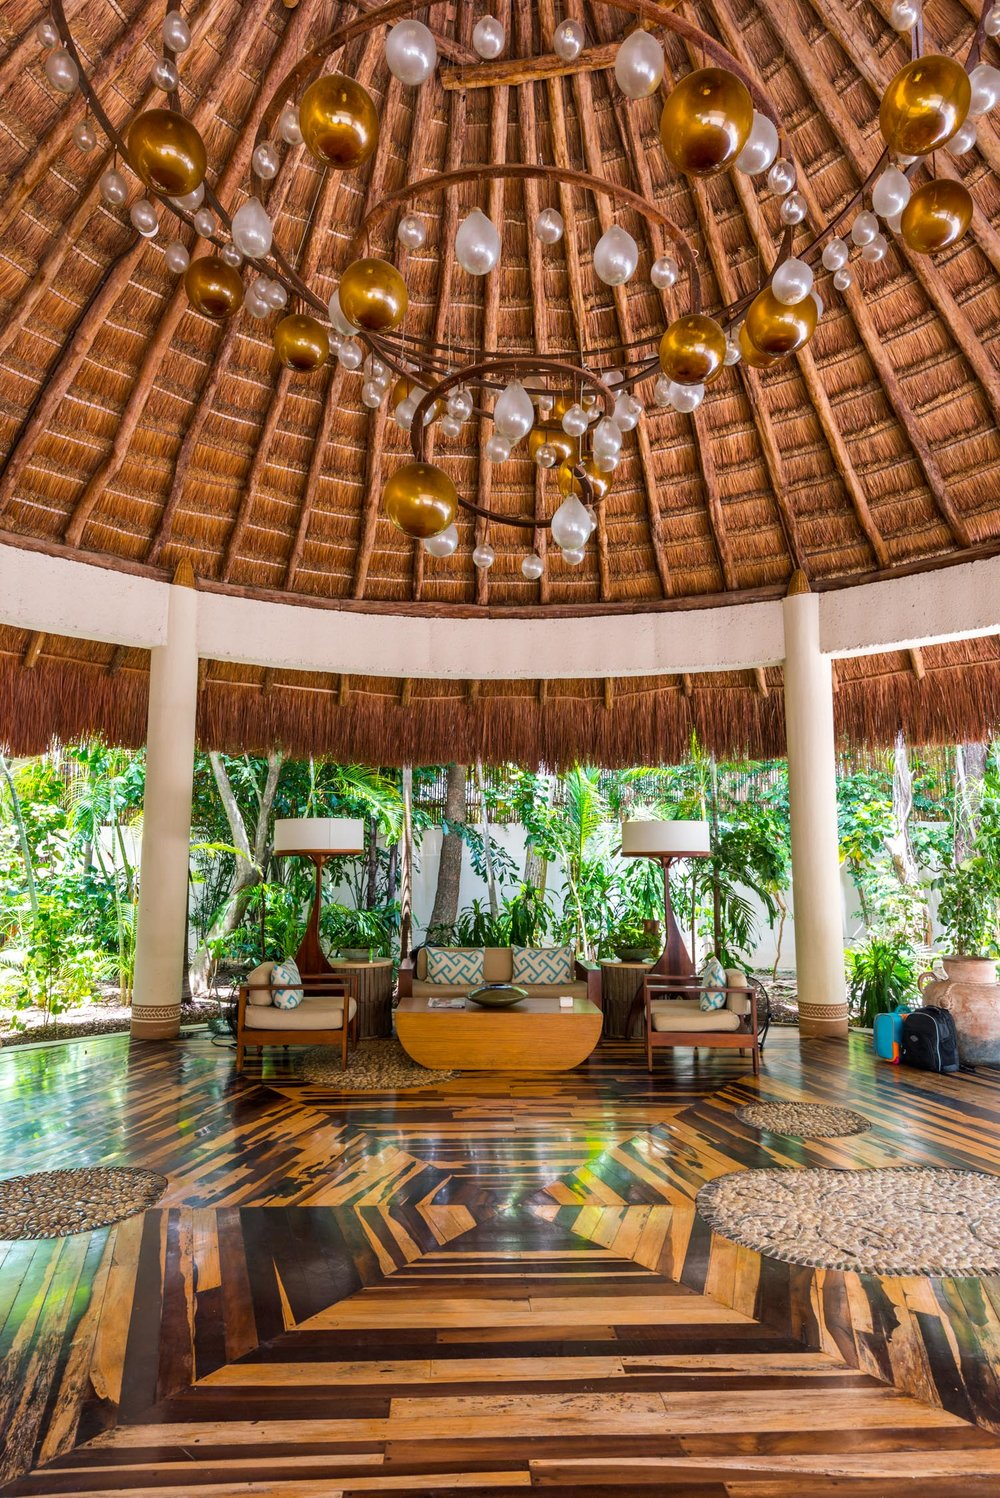 The lobby at the Viceroy, Riviera Maya